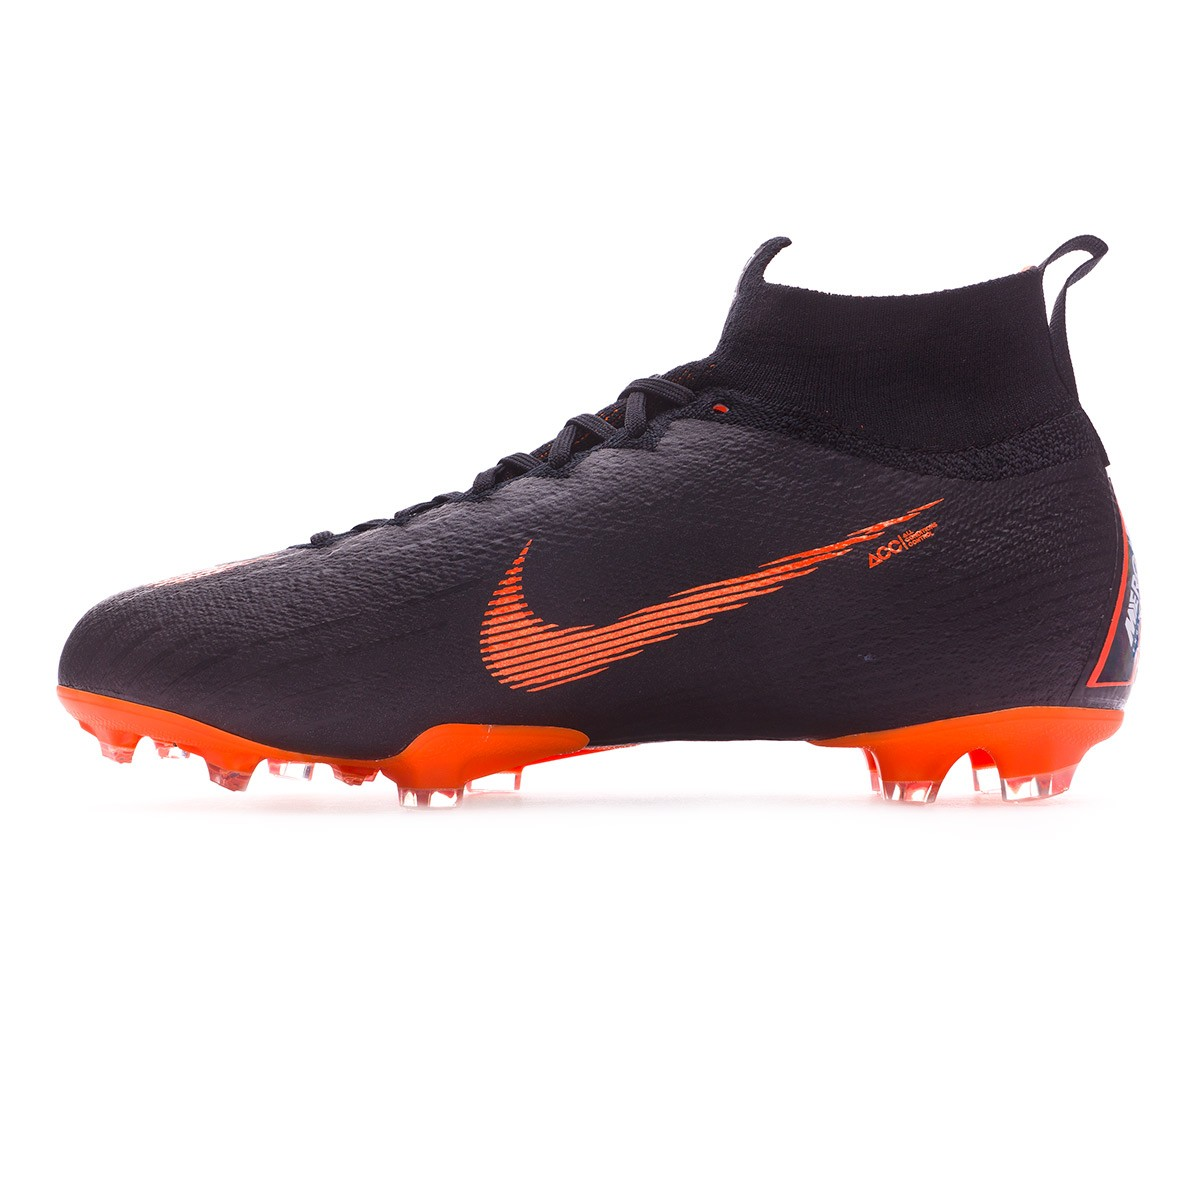 1f97a628 Football Boots Nike Kids Mercurial Superfly VI Elite FG Black-Total  orange-White - Football store Fútbol Emotion